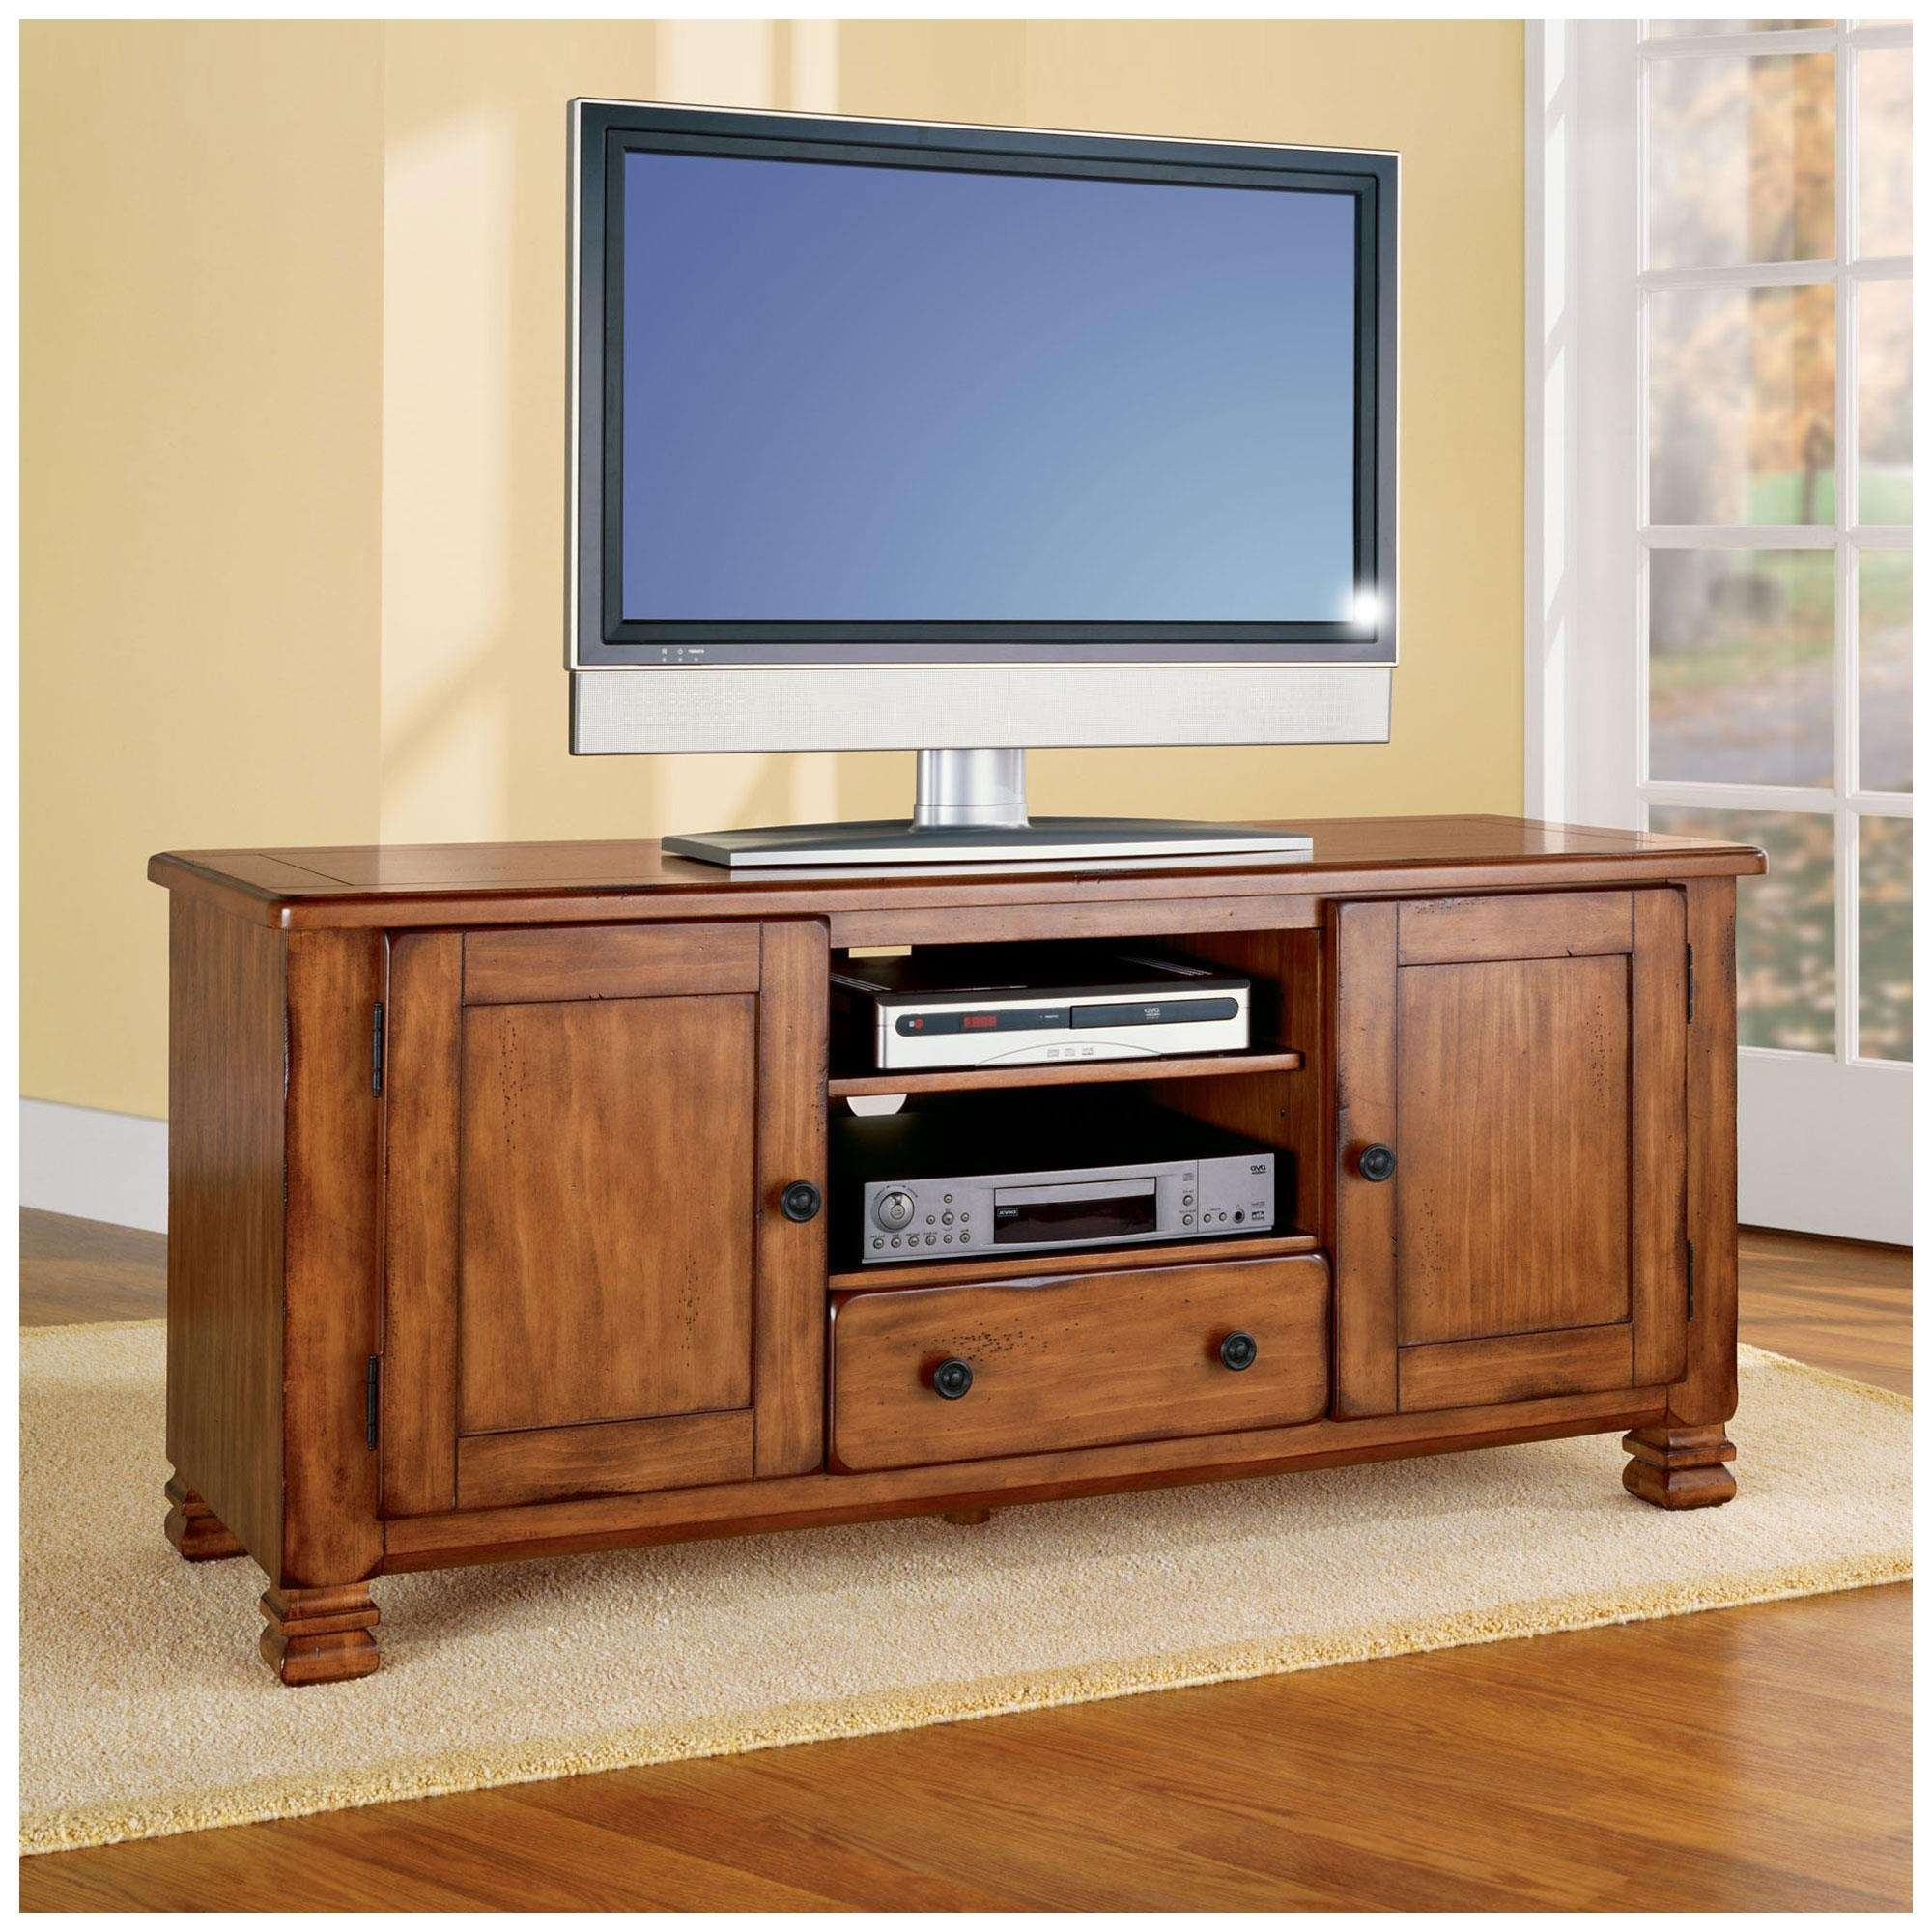 Tv : Cheap Rustic Tv Stands Trendy Inexpensive Rustic Tv Stands Regarding Cheap Rustic Tv Stands (View 15 of 15)